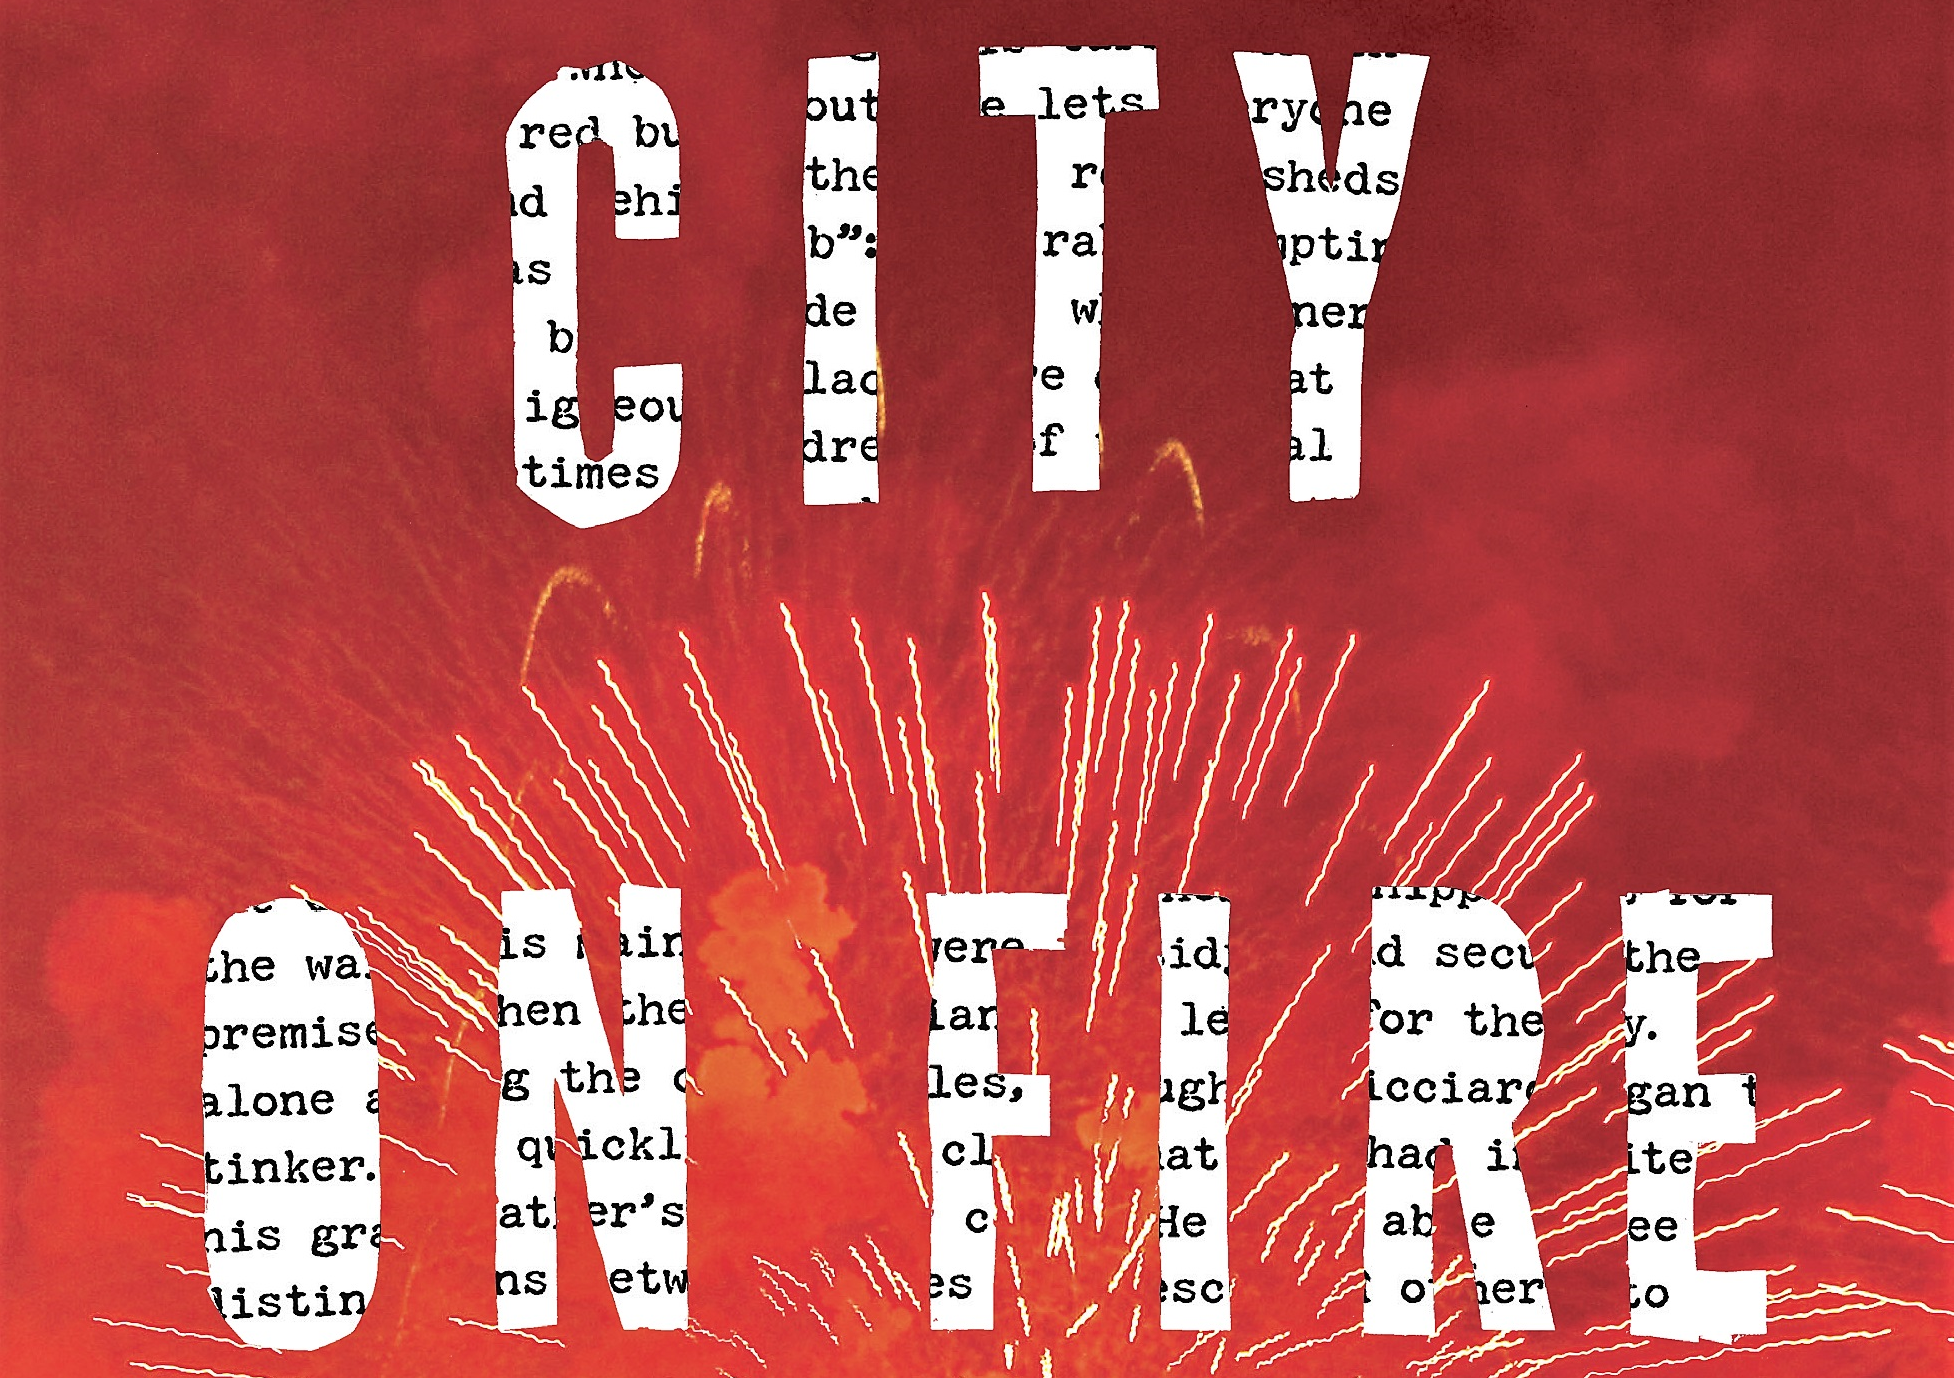 city on fire 2